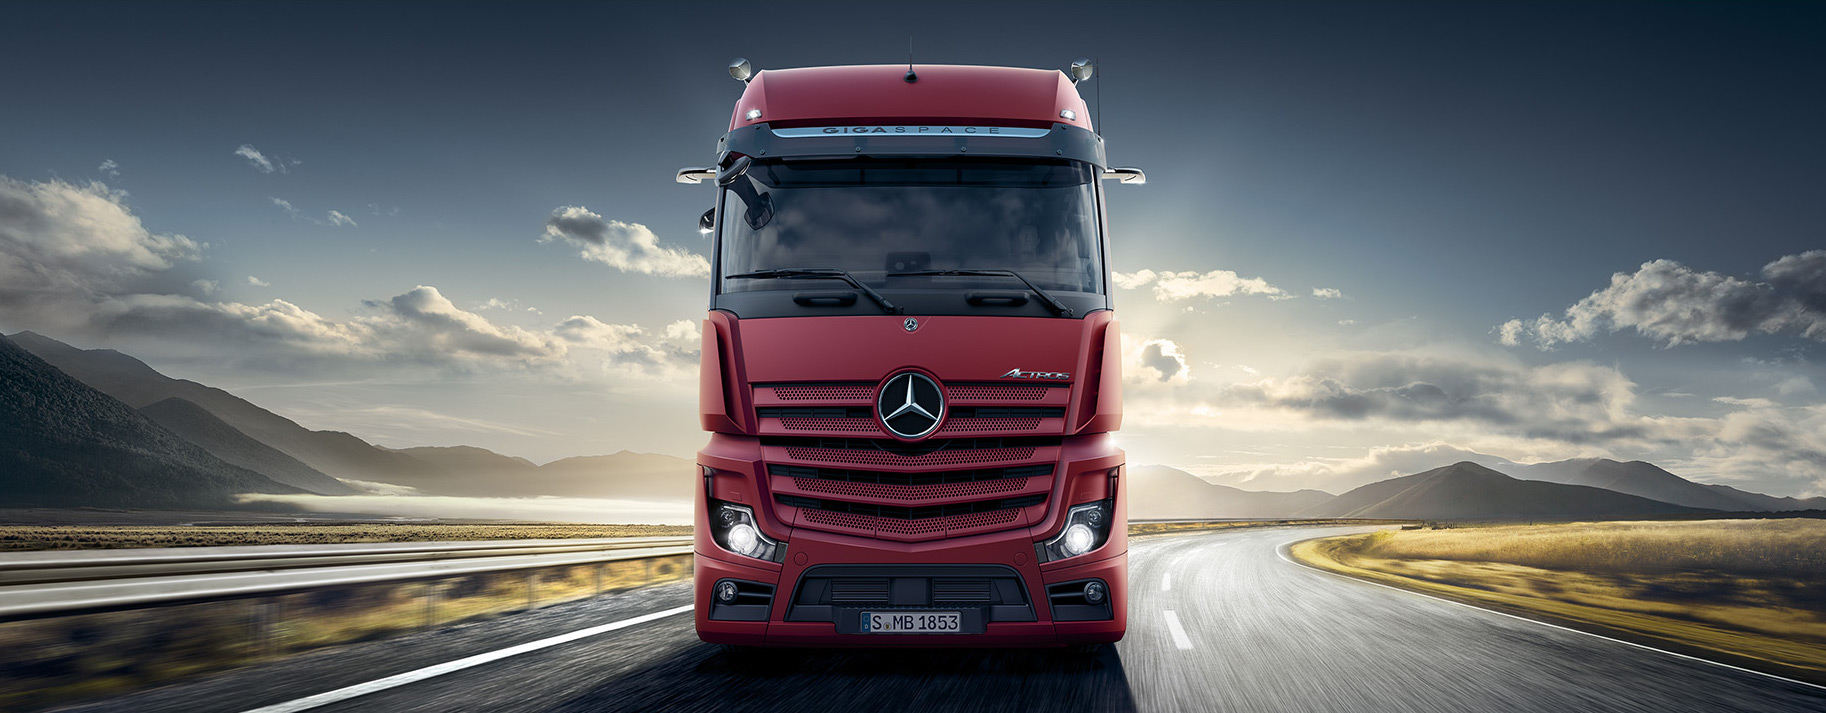 Mercedes-Benz Actros 3336 LS 6x4 Long Haul Truck